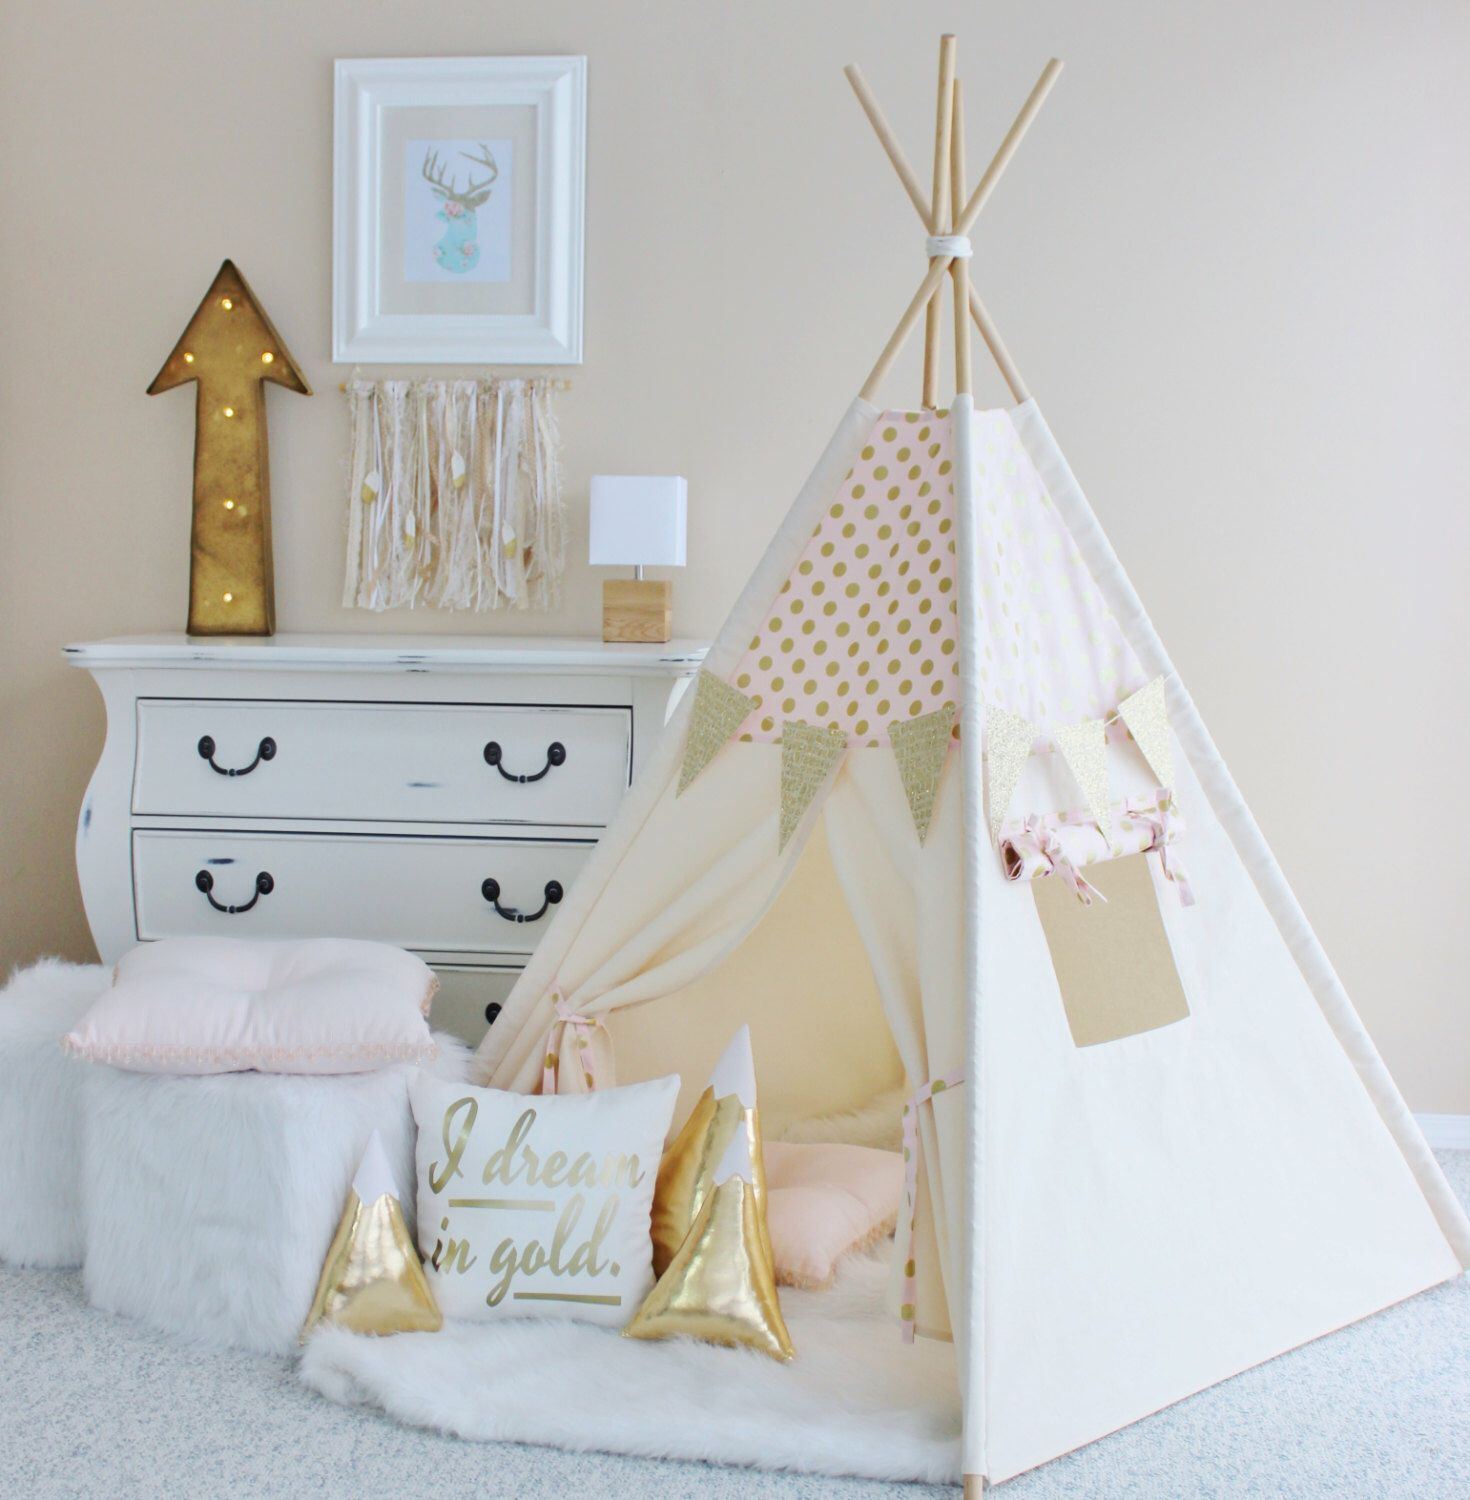 PINK with Gold Glamour Polka Dot Play Tent - Canvas Teepee Pink Play Tent Play House Nursery Teepee Tent Kids Teepee Indoor & PINK with Gold Glamour Polka Dot Play Tent - Canvas Teepee Pink ...